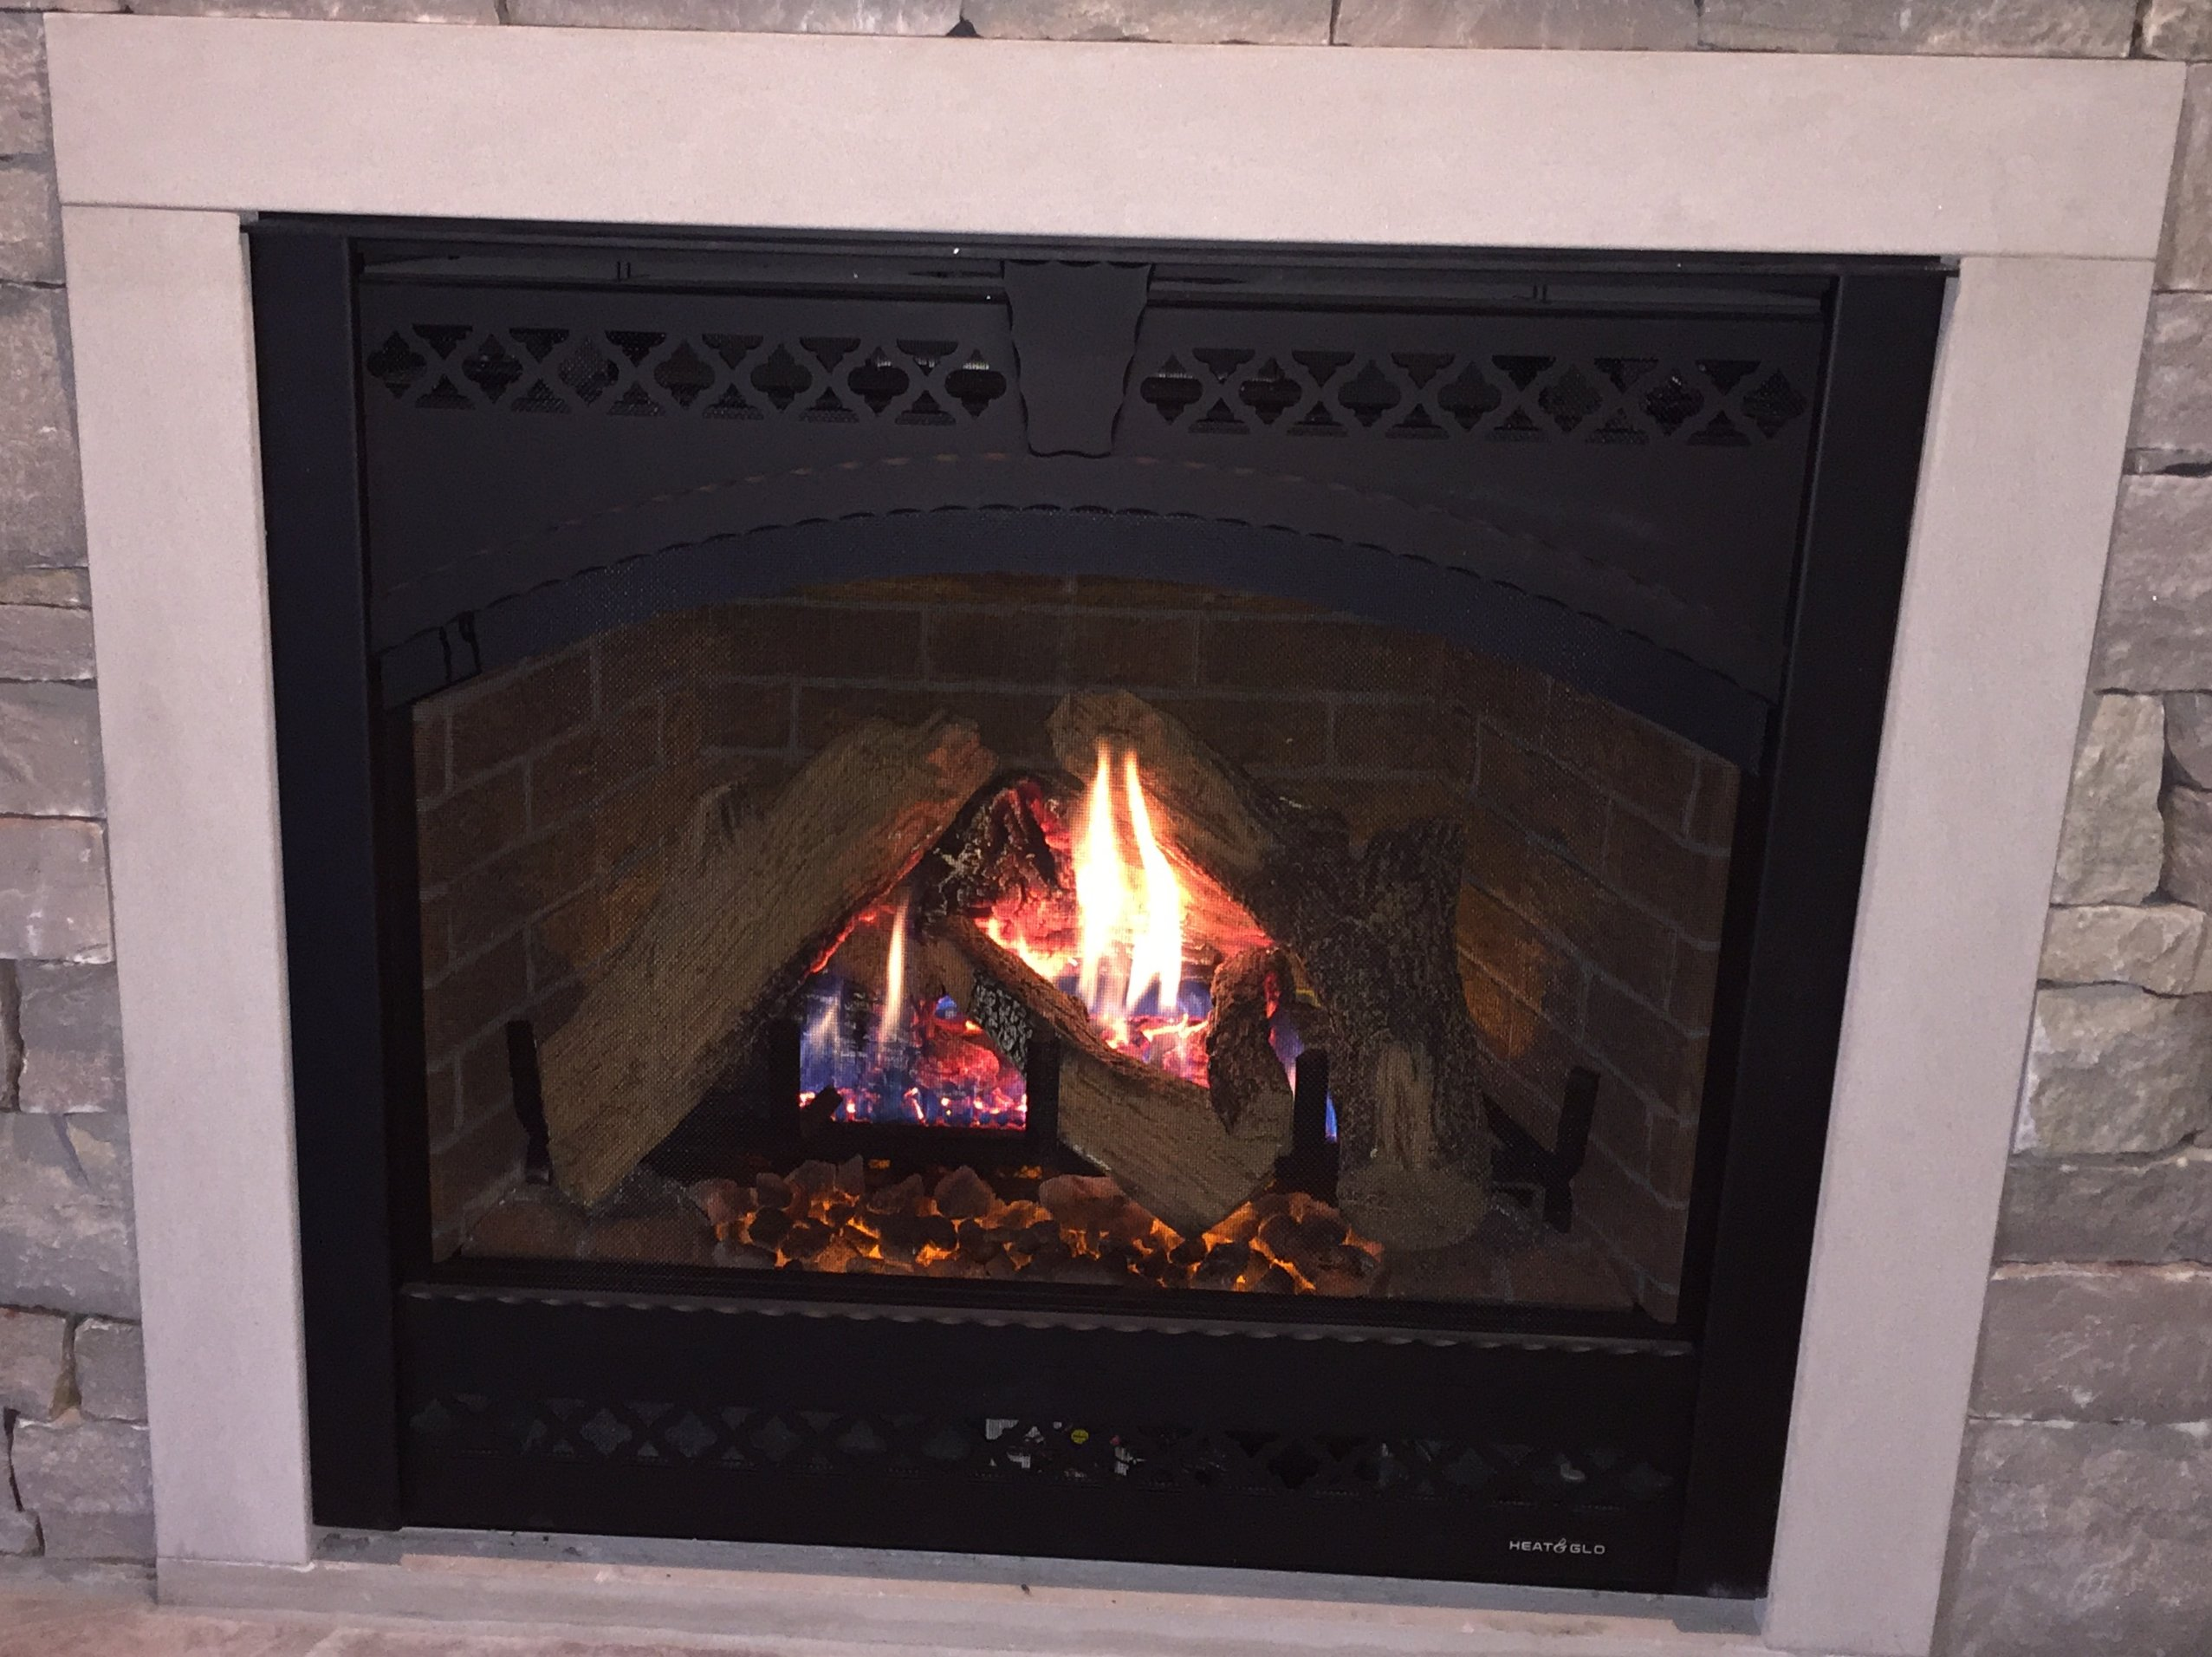 nxt novus kitchens wall fireplaces sets log the heatilator gas tag finished fireplace outdoor stone around nyc cultured